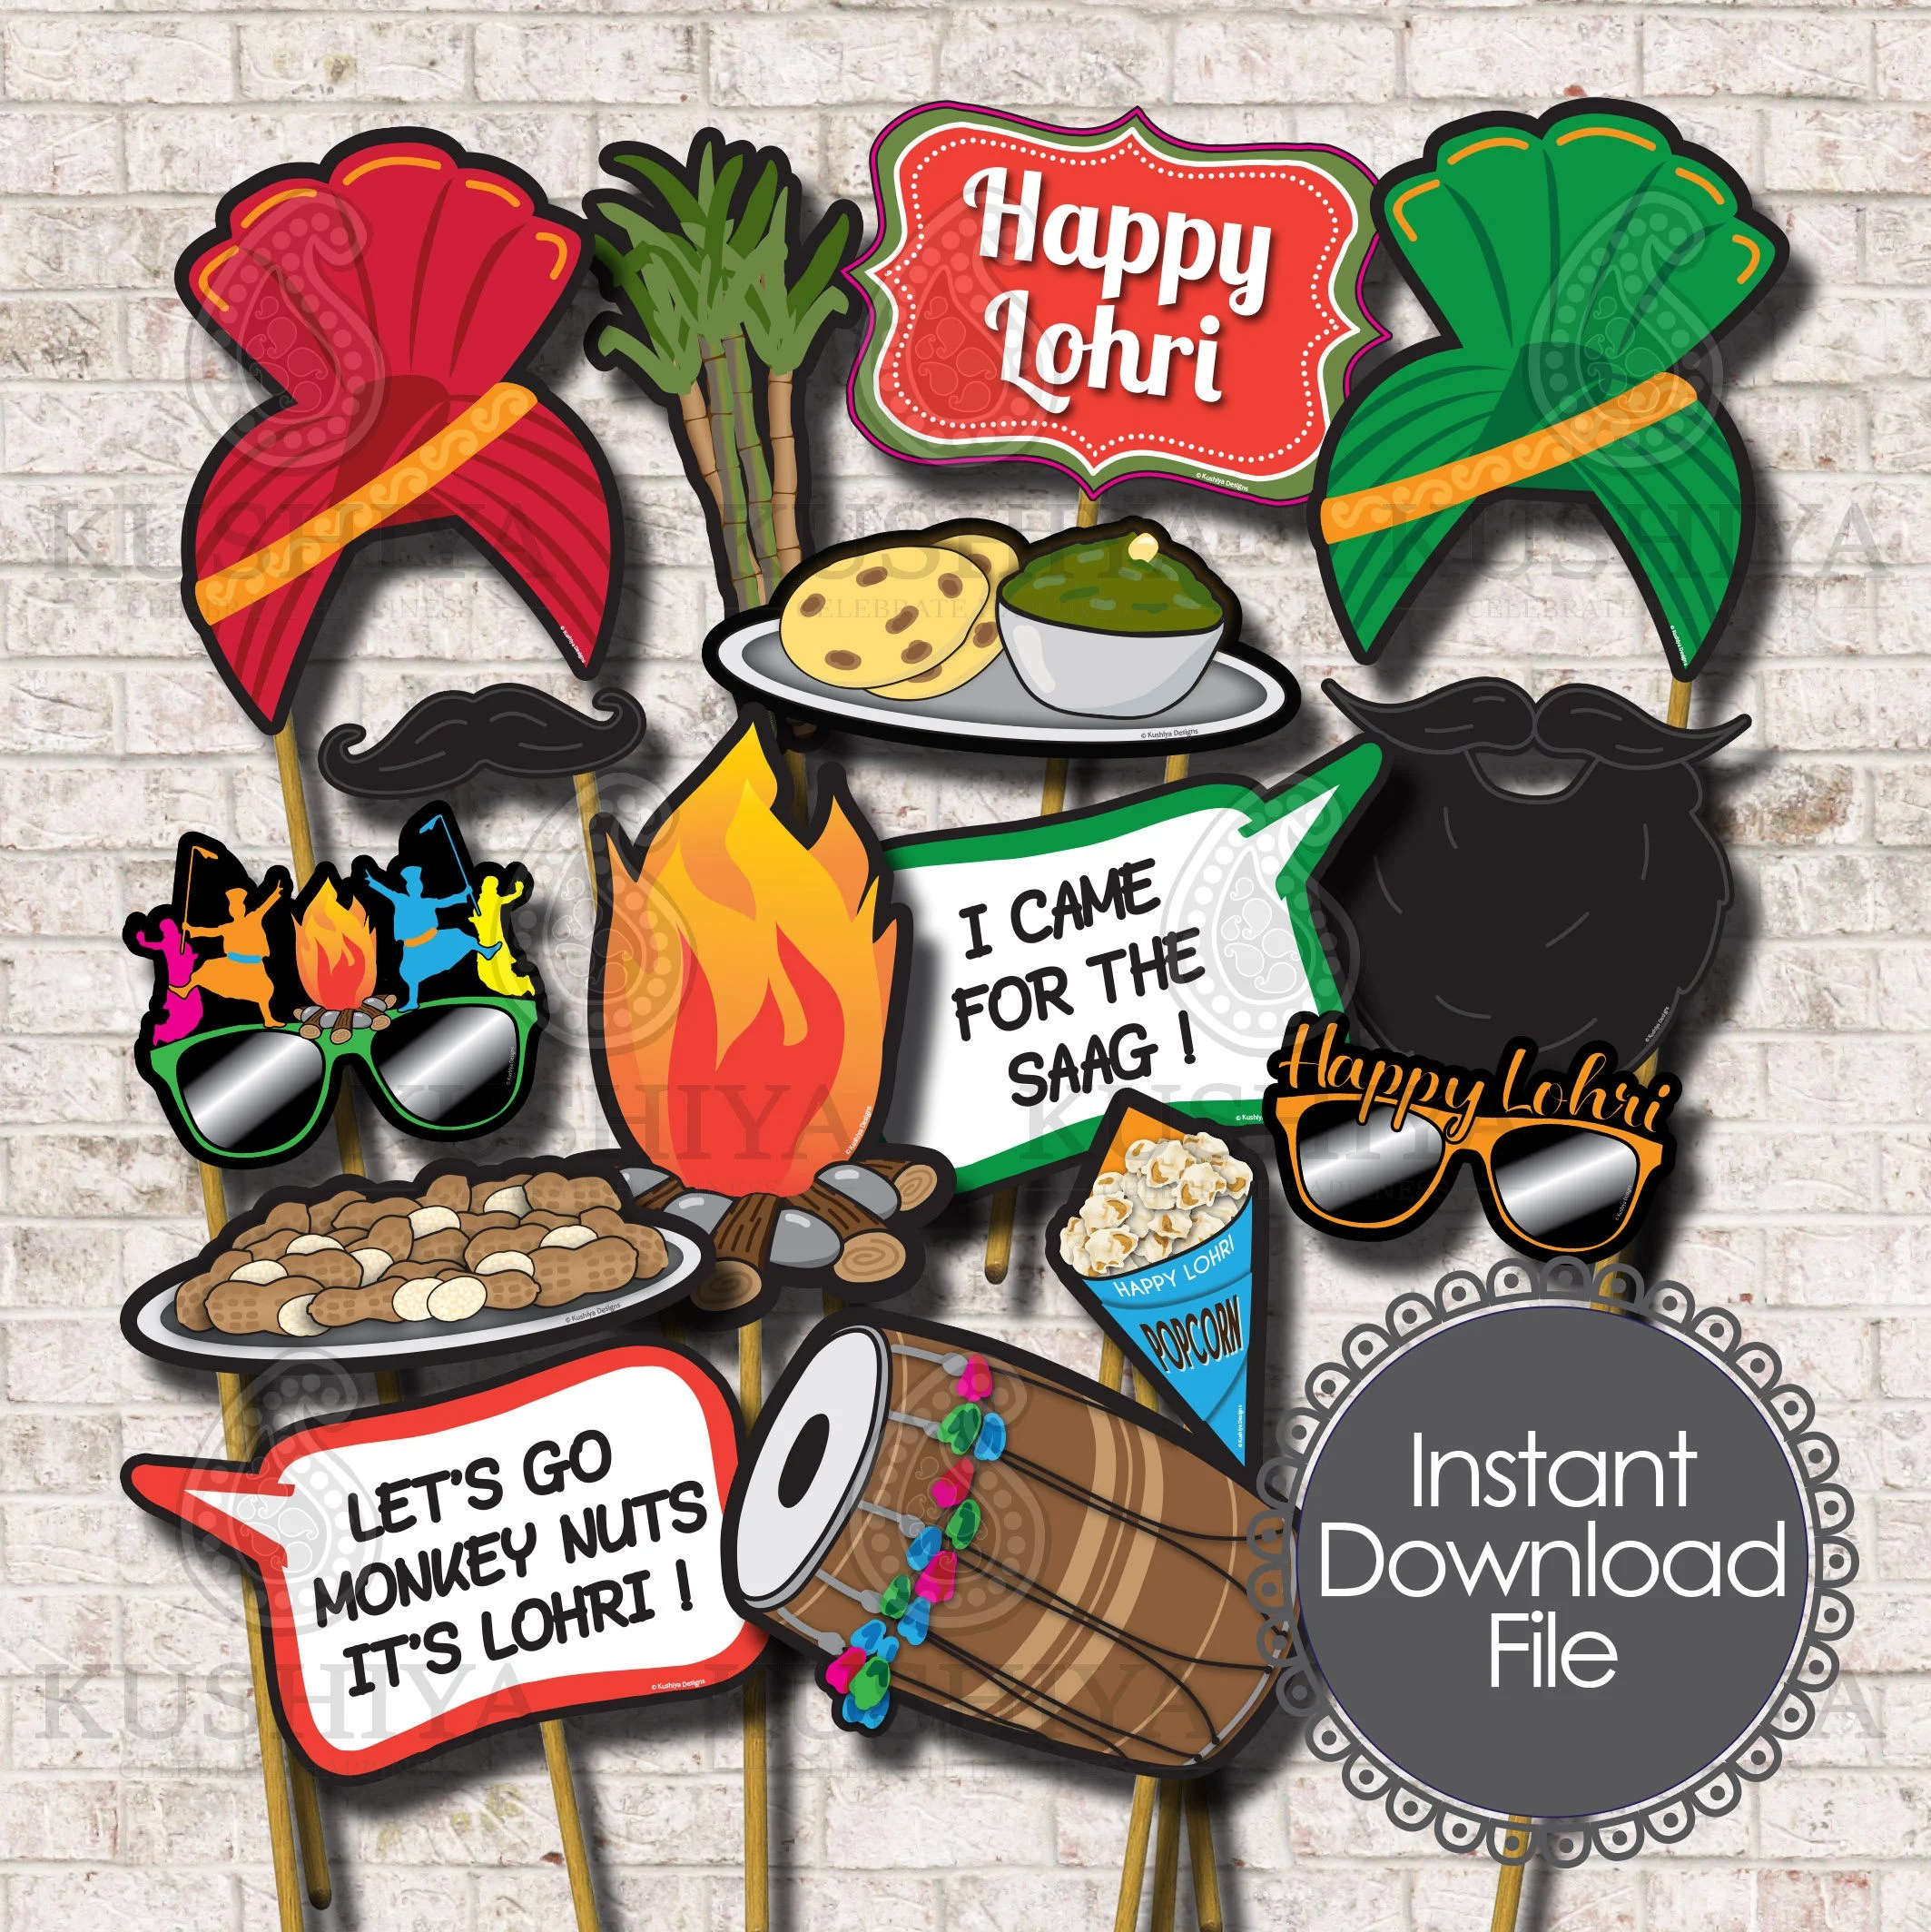 Photobooth Maison Lohri Party Photo Booth Props Set Of 15 Lohri Celebrations Punjabi Indian Party Instant Download Printable Print Your Own Diy